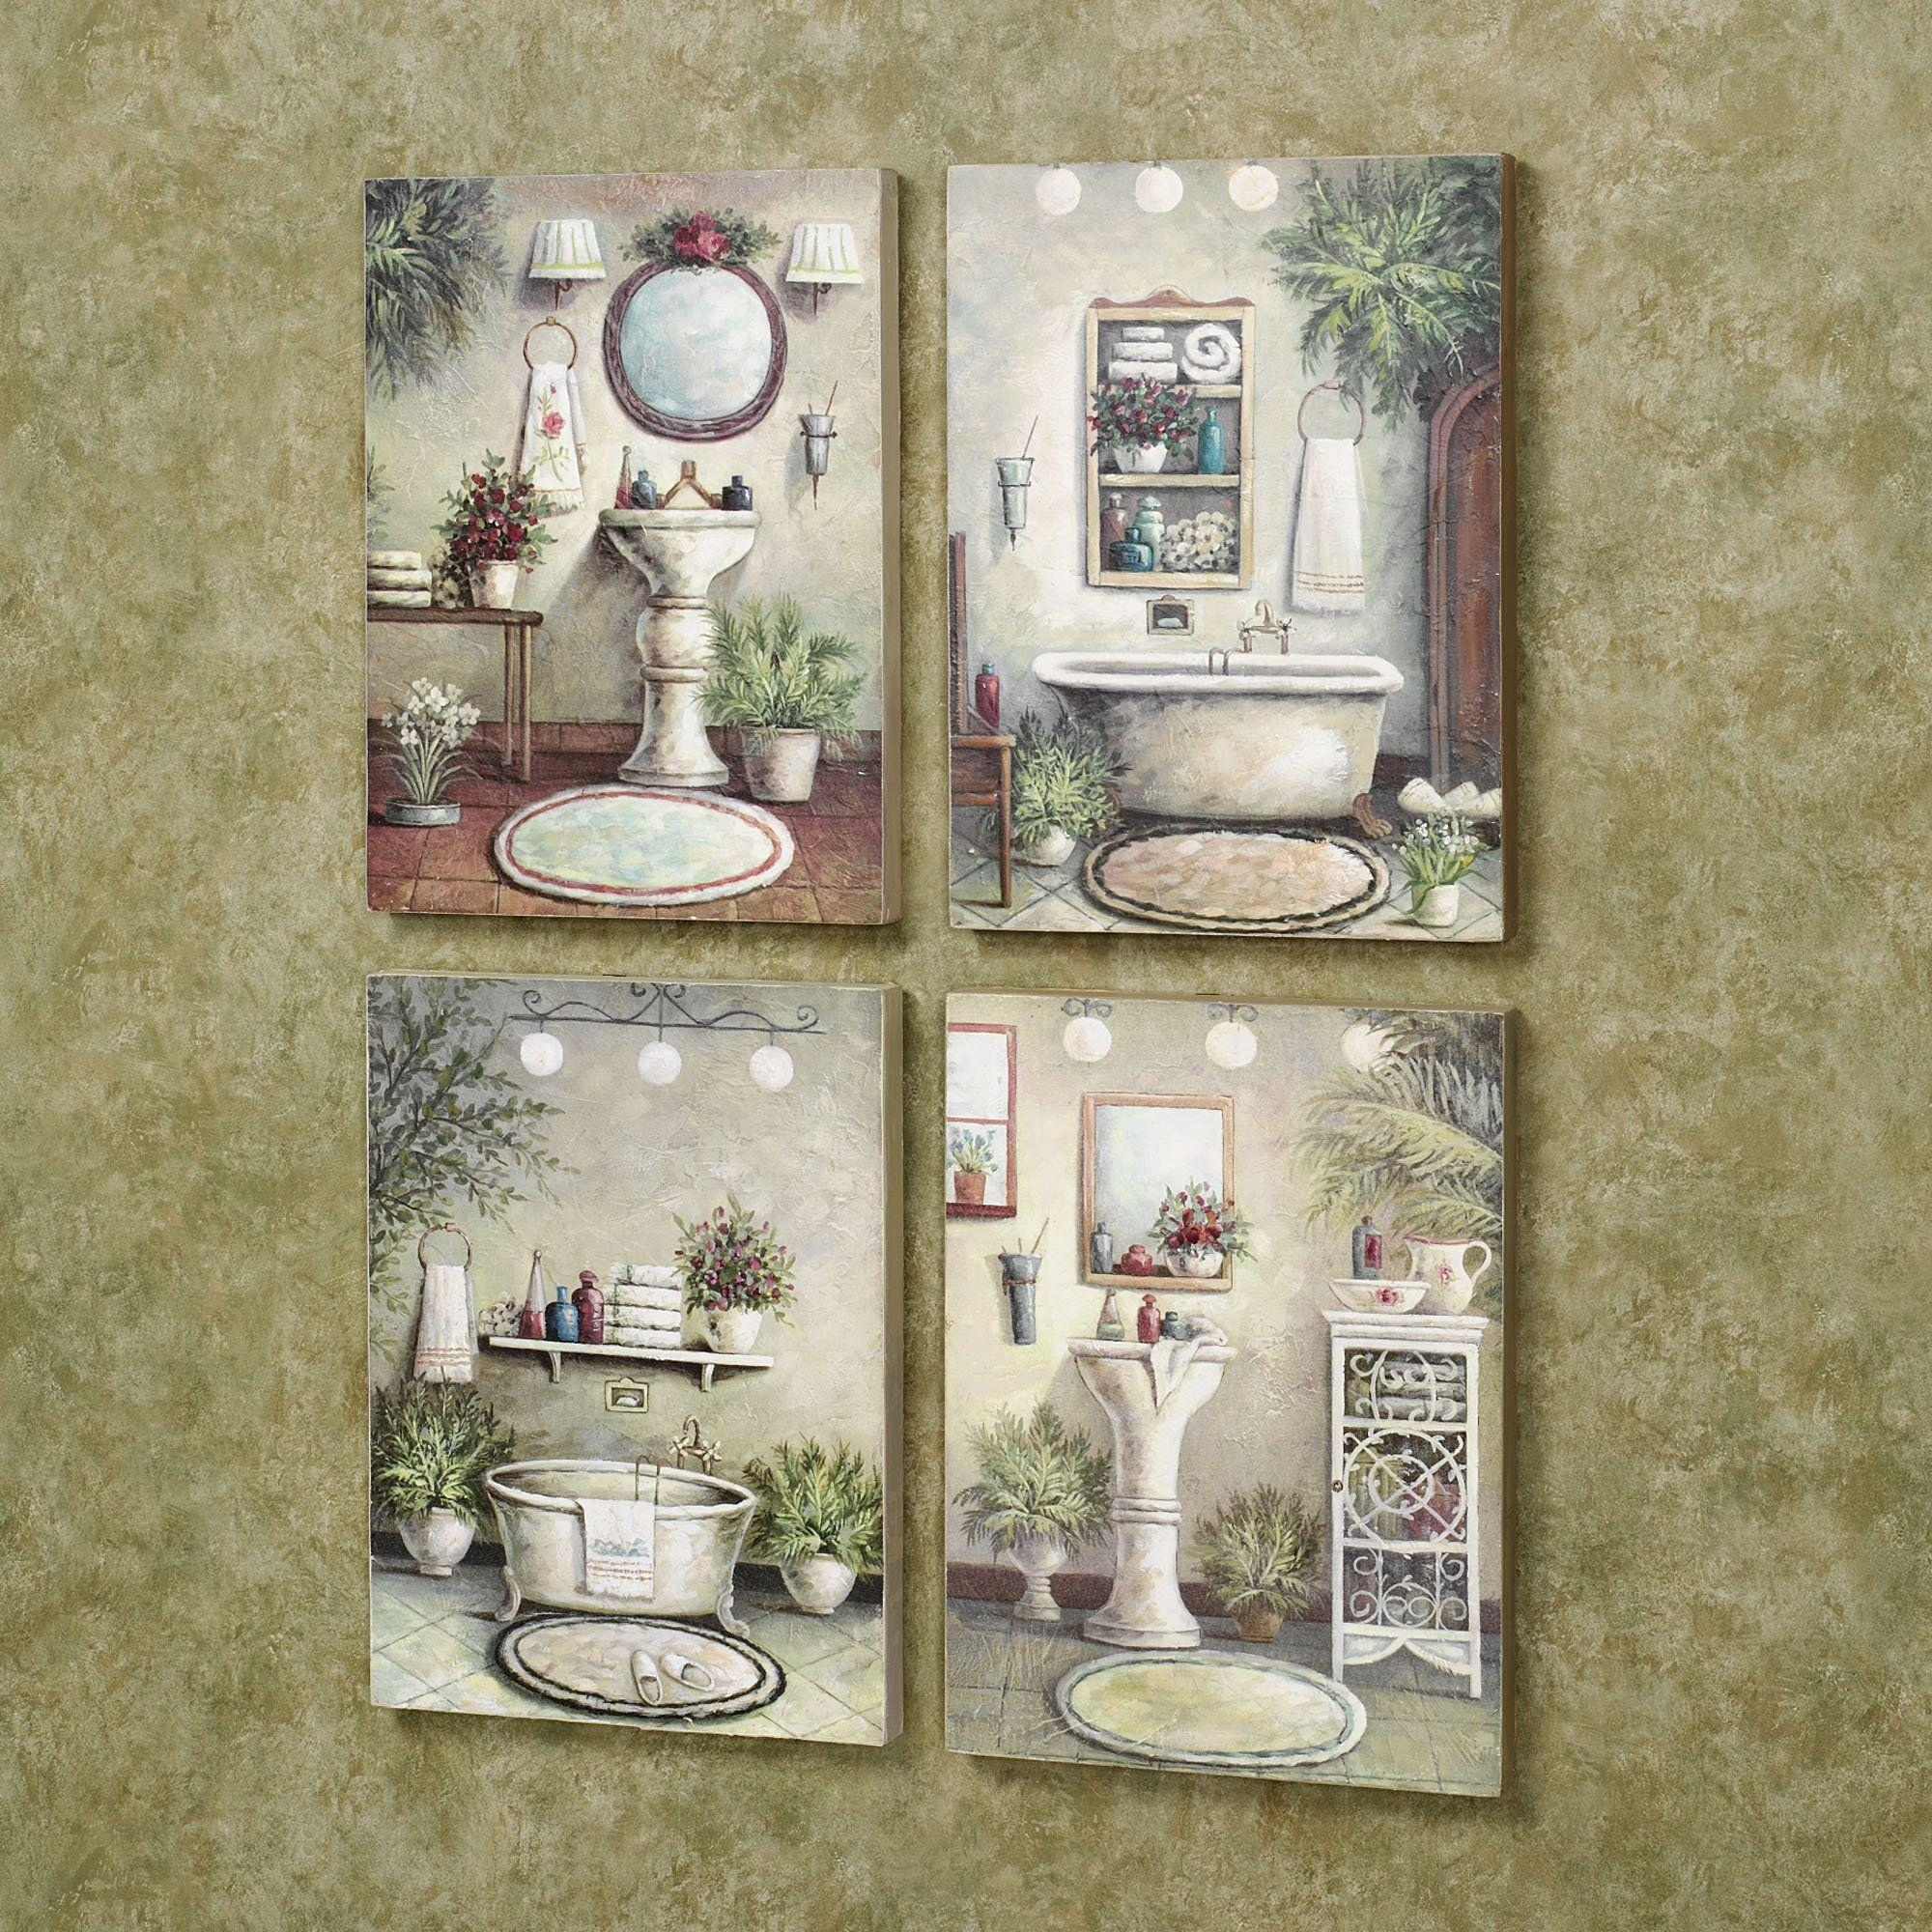 Bathroom Wall Art And Decor 20 Best Italian Wall Art For Bathroom Wall Art Ideas